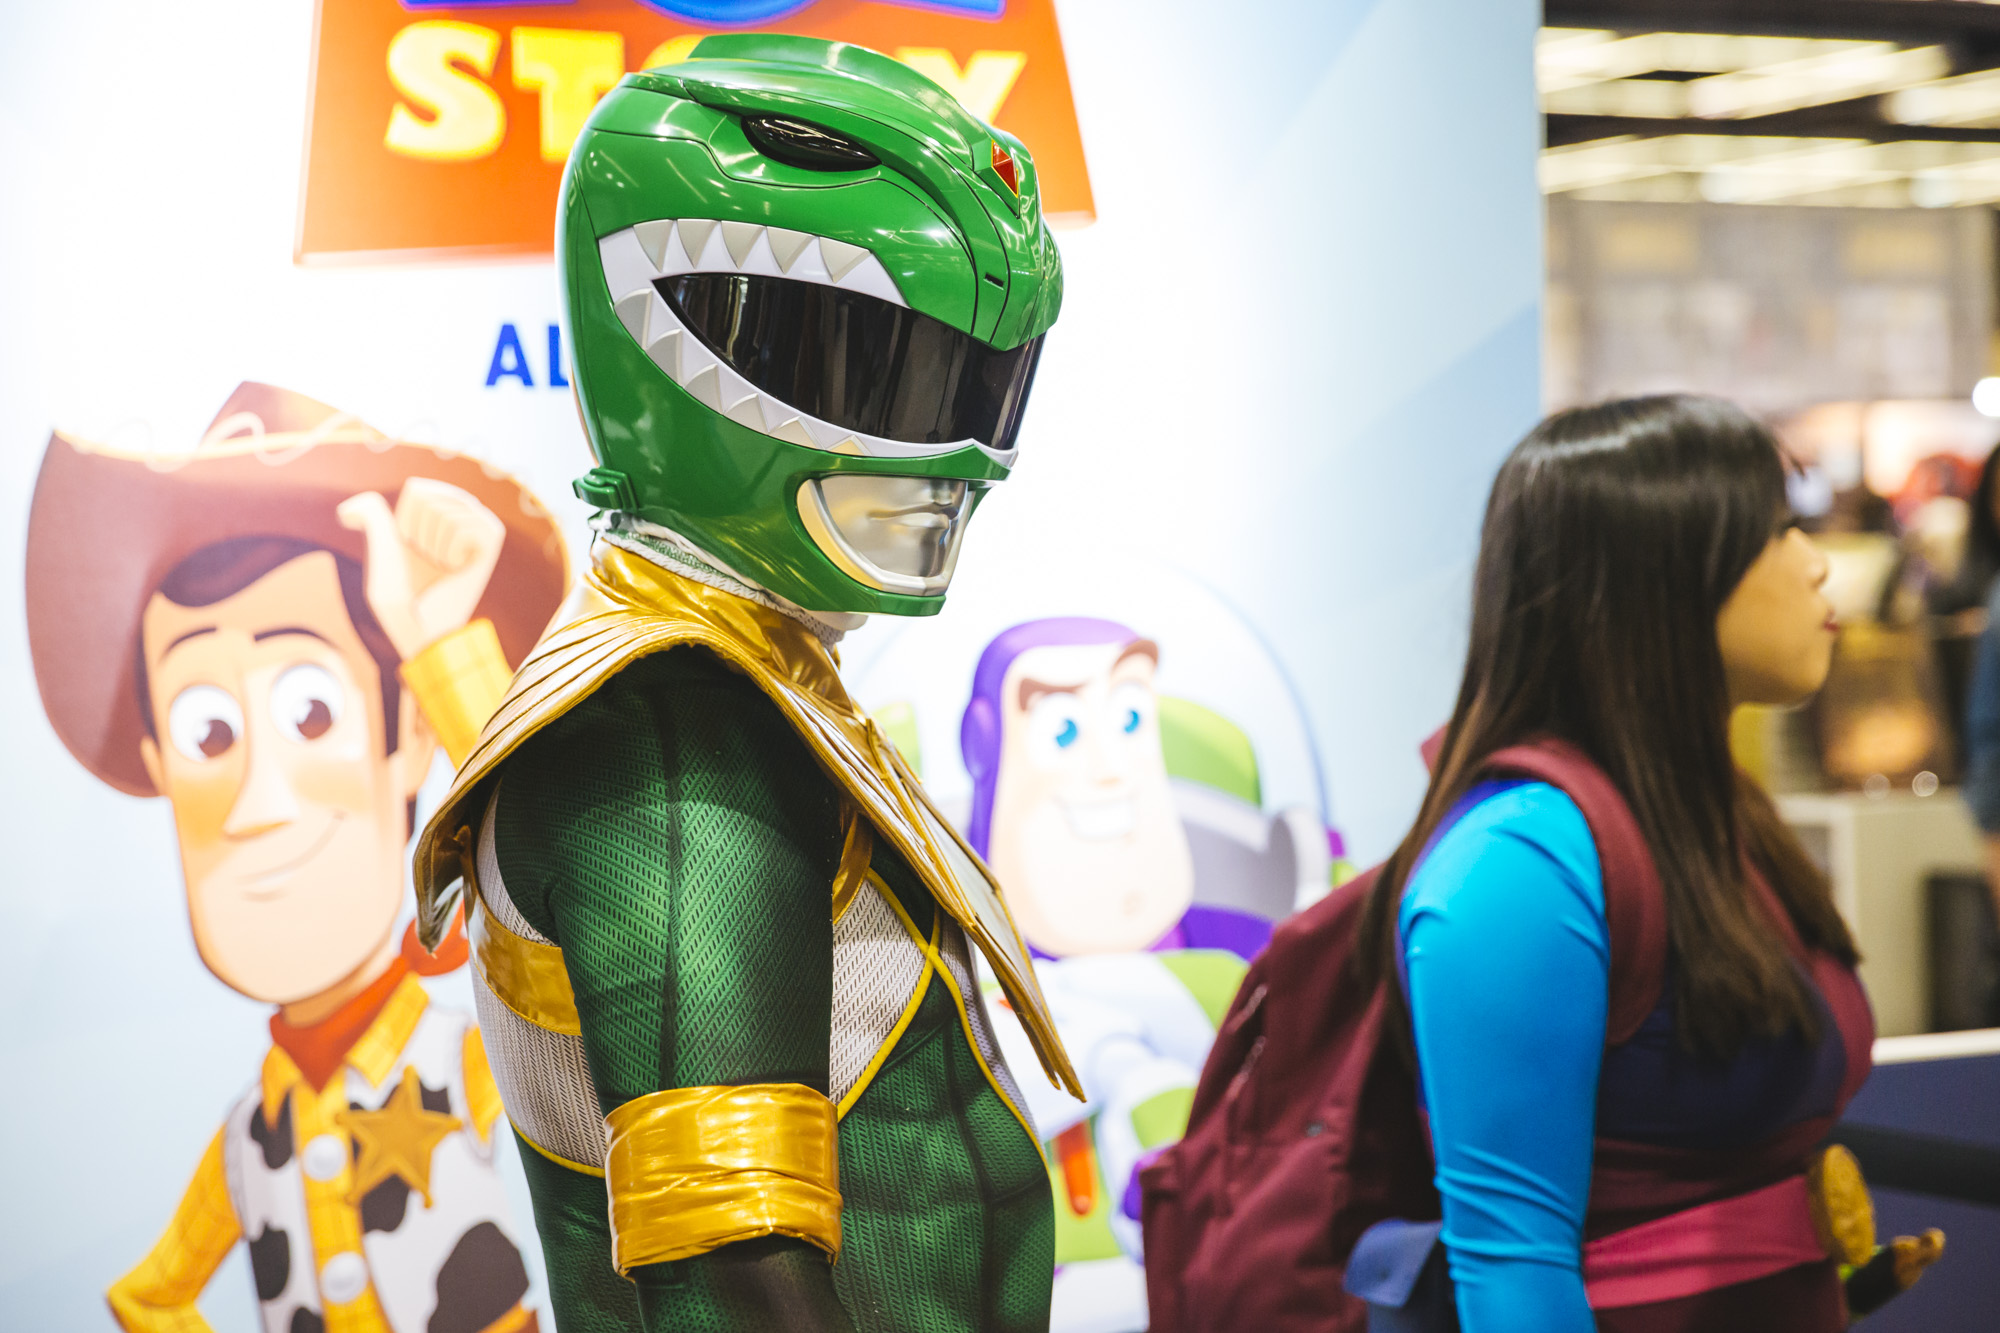 Emerald City Comic Con is the largest comic book and pop culture convention in the Pacific Northwest. Thousands come to the Washington State Convention Center in Seattle for 4 days of cosplay, comic books, celebrities, panels and more. This year, they're expecting upwards of 95,000 people! Today, (March 16, 2019) is the third day of the convention. (Image: Sunita Martini / Seattle Refined)